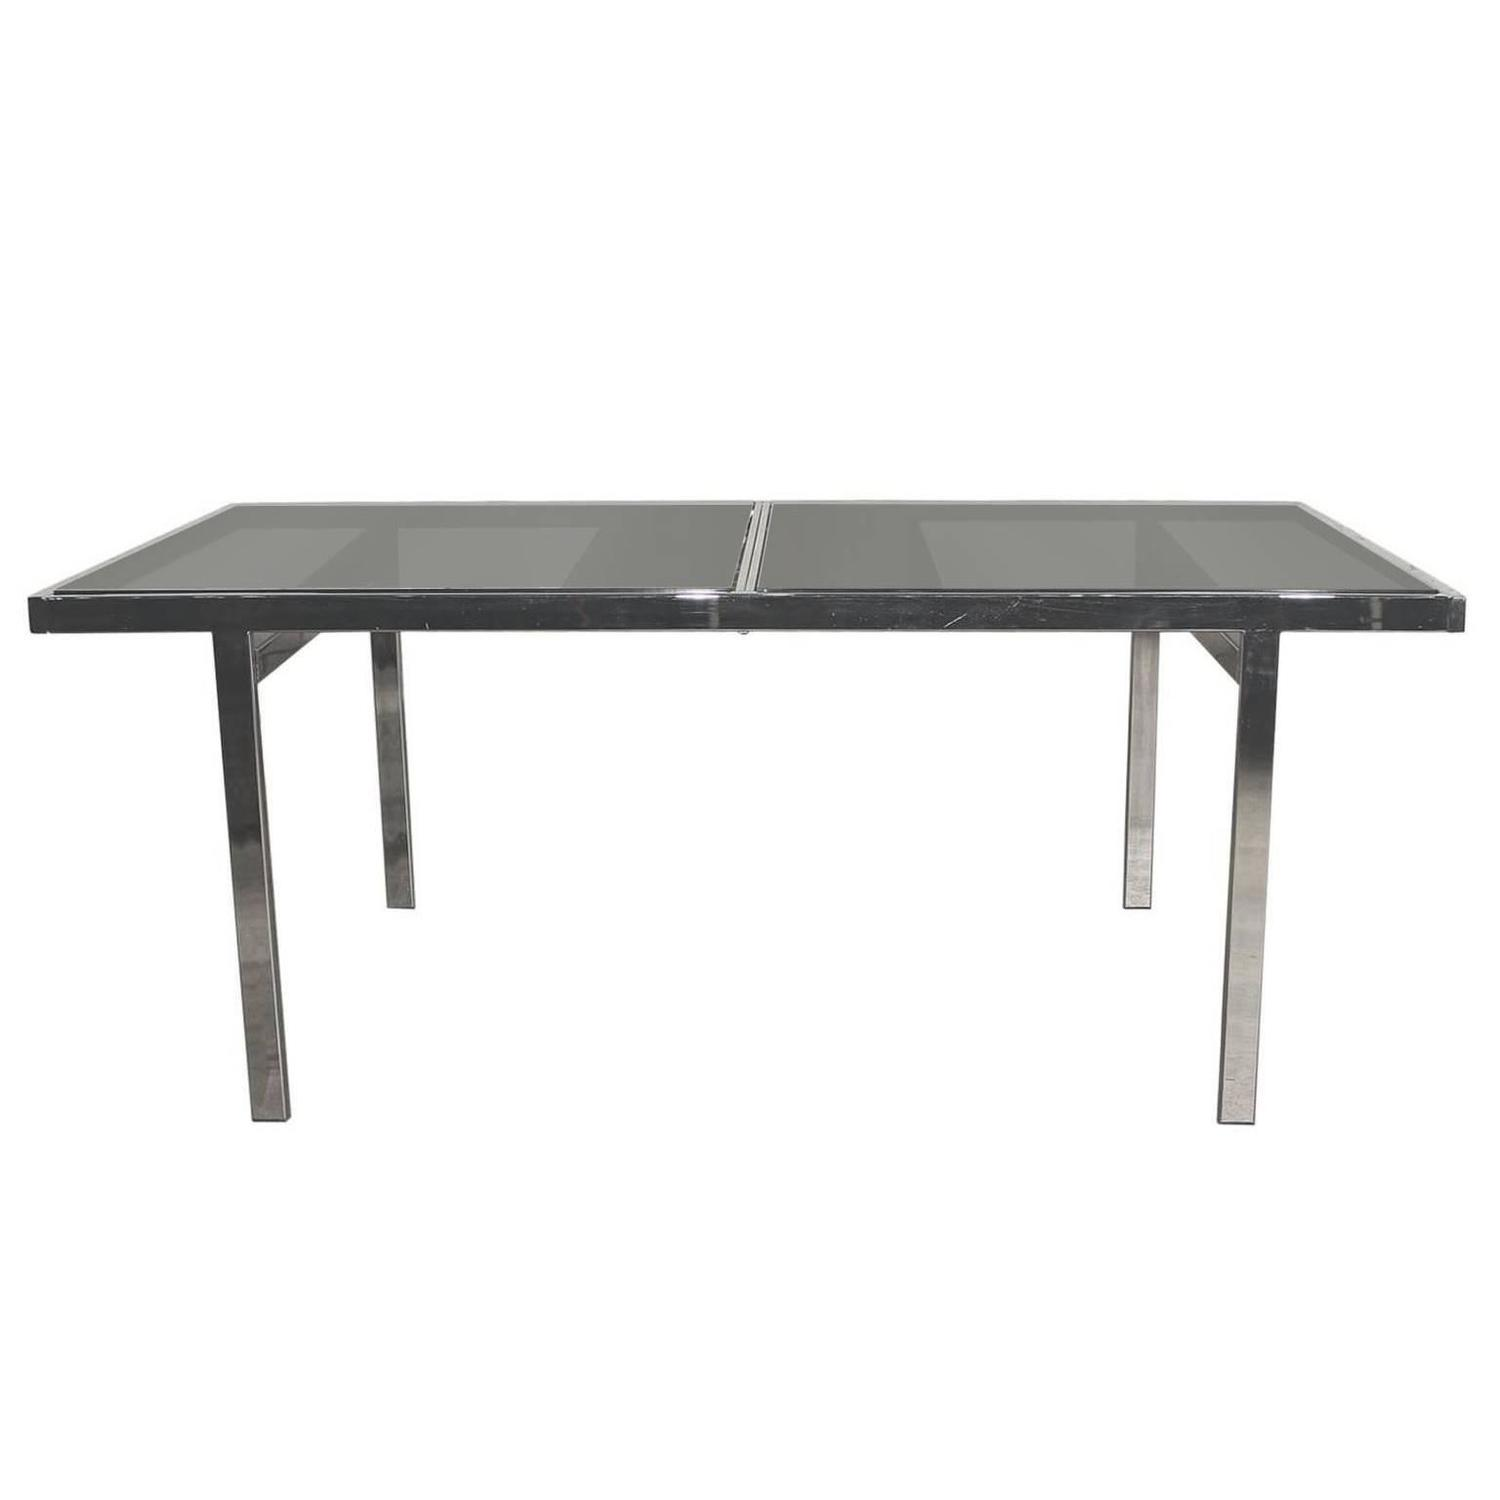 Milo Baughman Expandable Dining Table Chrome And Smoked Glass For Sale